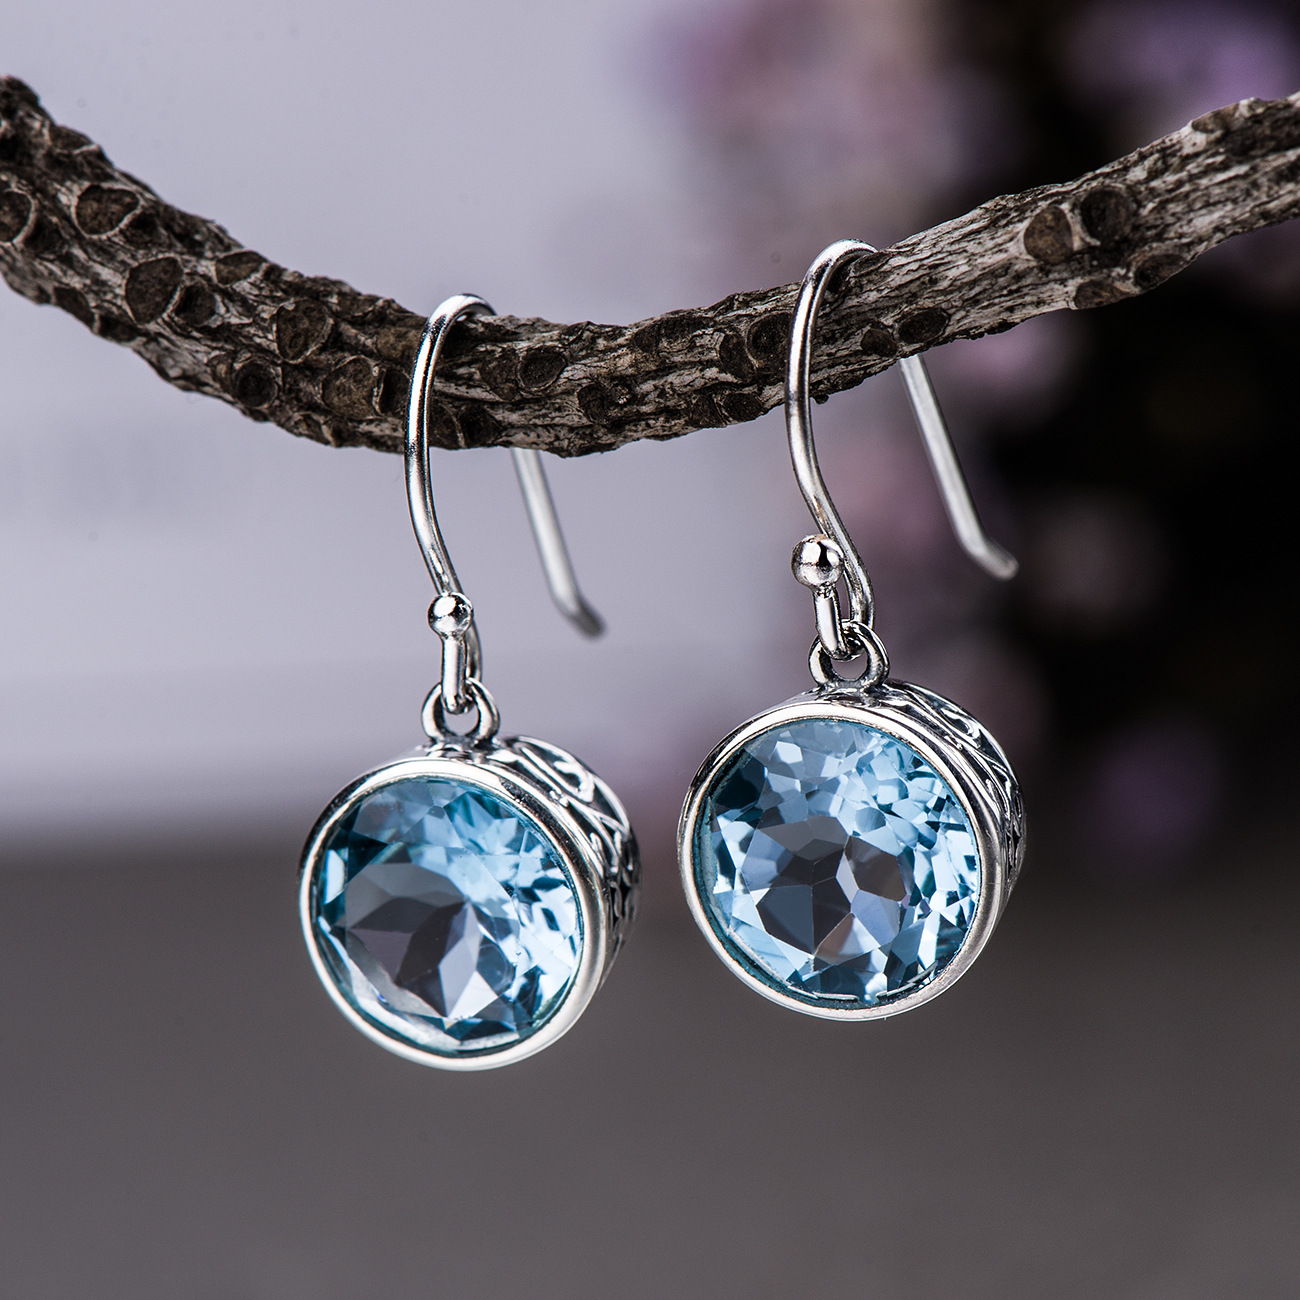 London Topaz Earrings Blue Natural Gemstone Drop Earrings For Women Simple Hook 925 Sterling Silver Hollow Design Round Shape майка классическая printio крепкий орешек